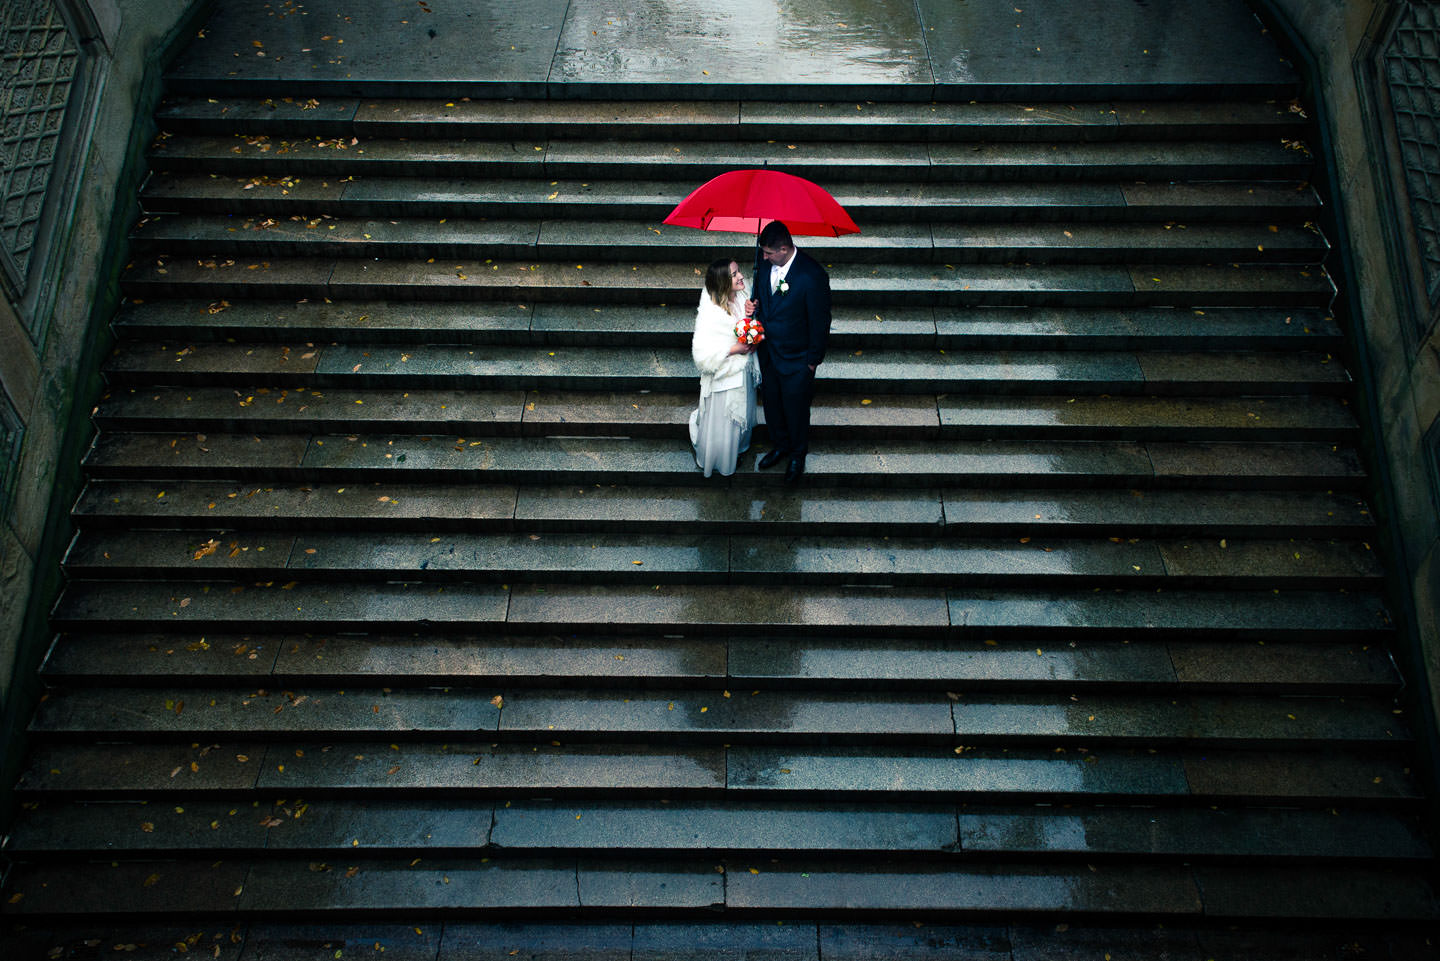 creative photo of bride and groom with red umbrella on bethesda terrace in central park new york city